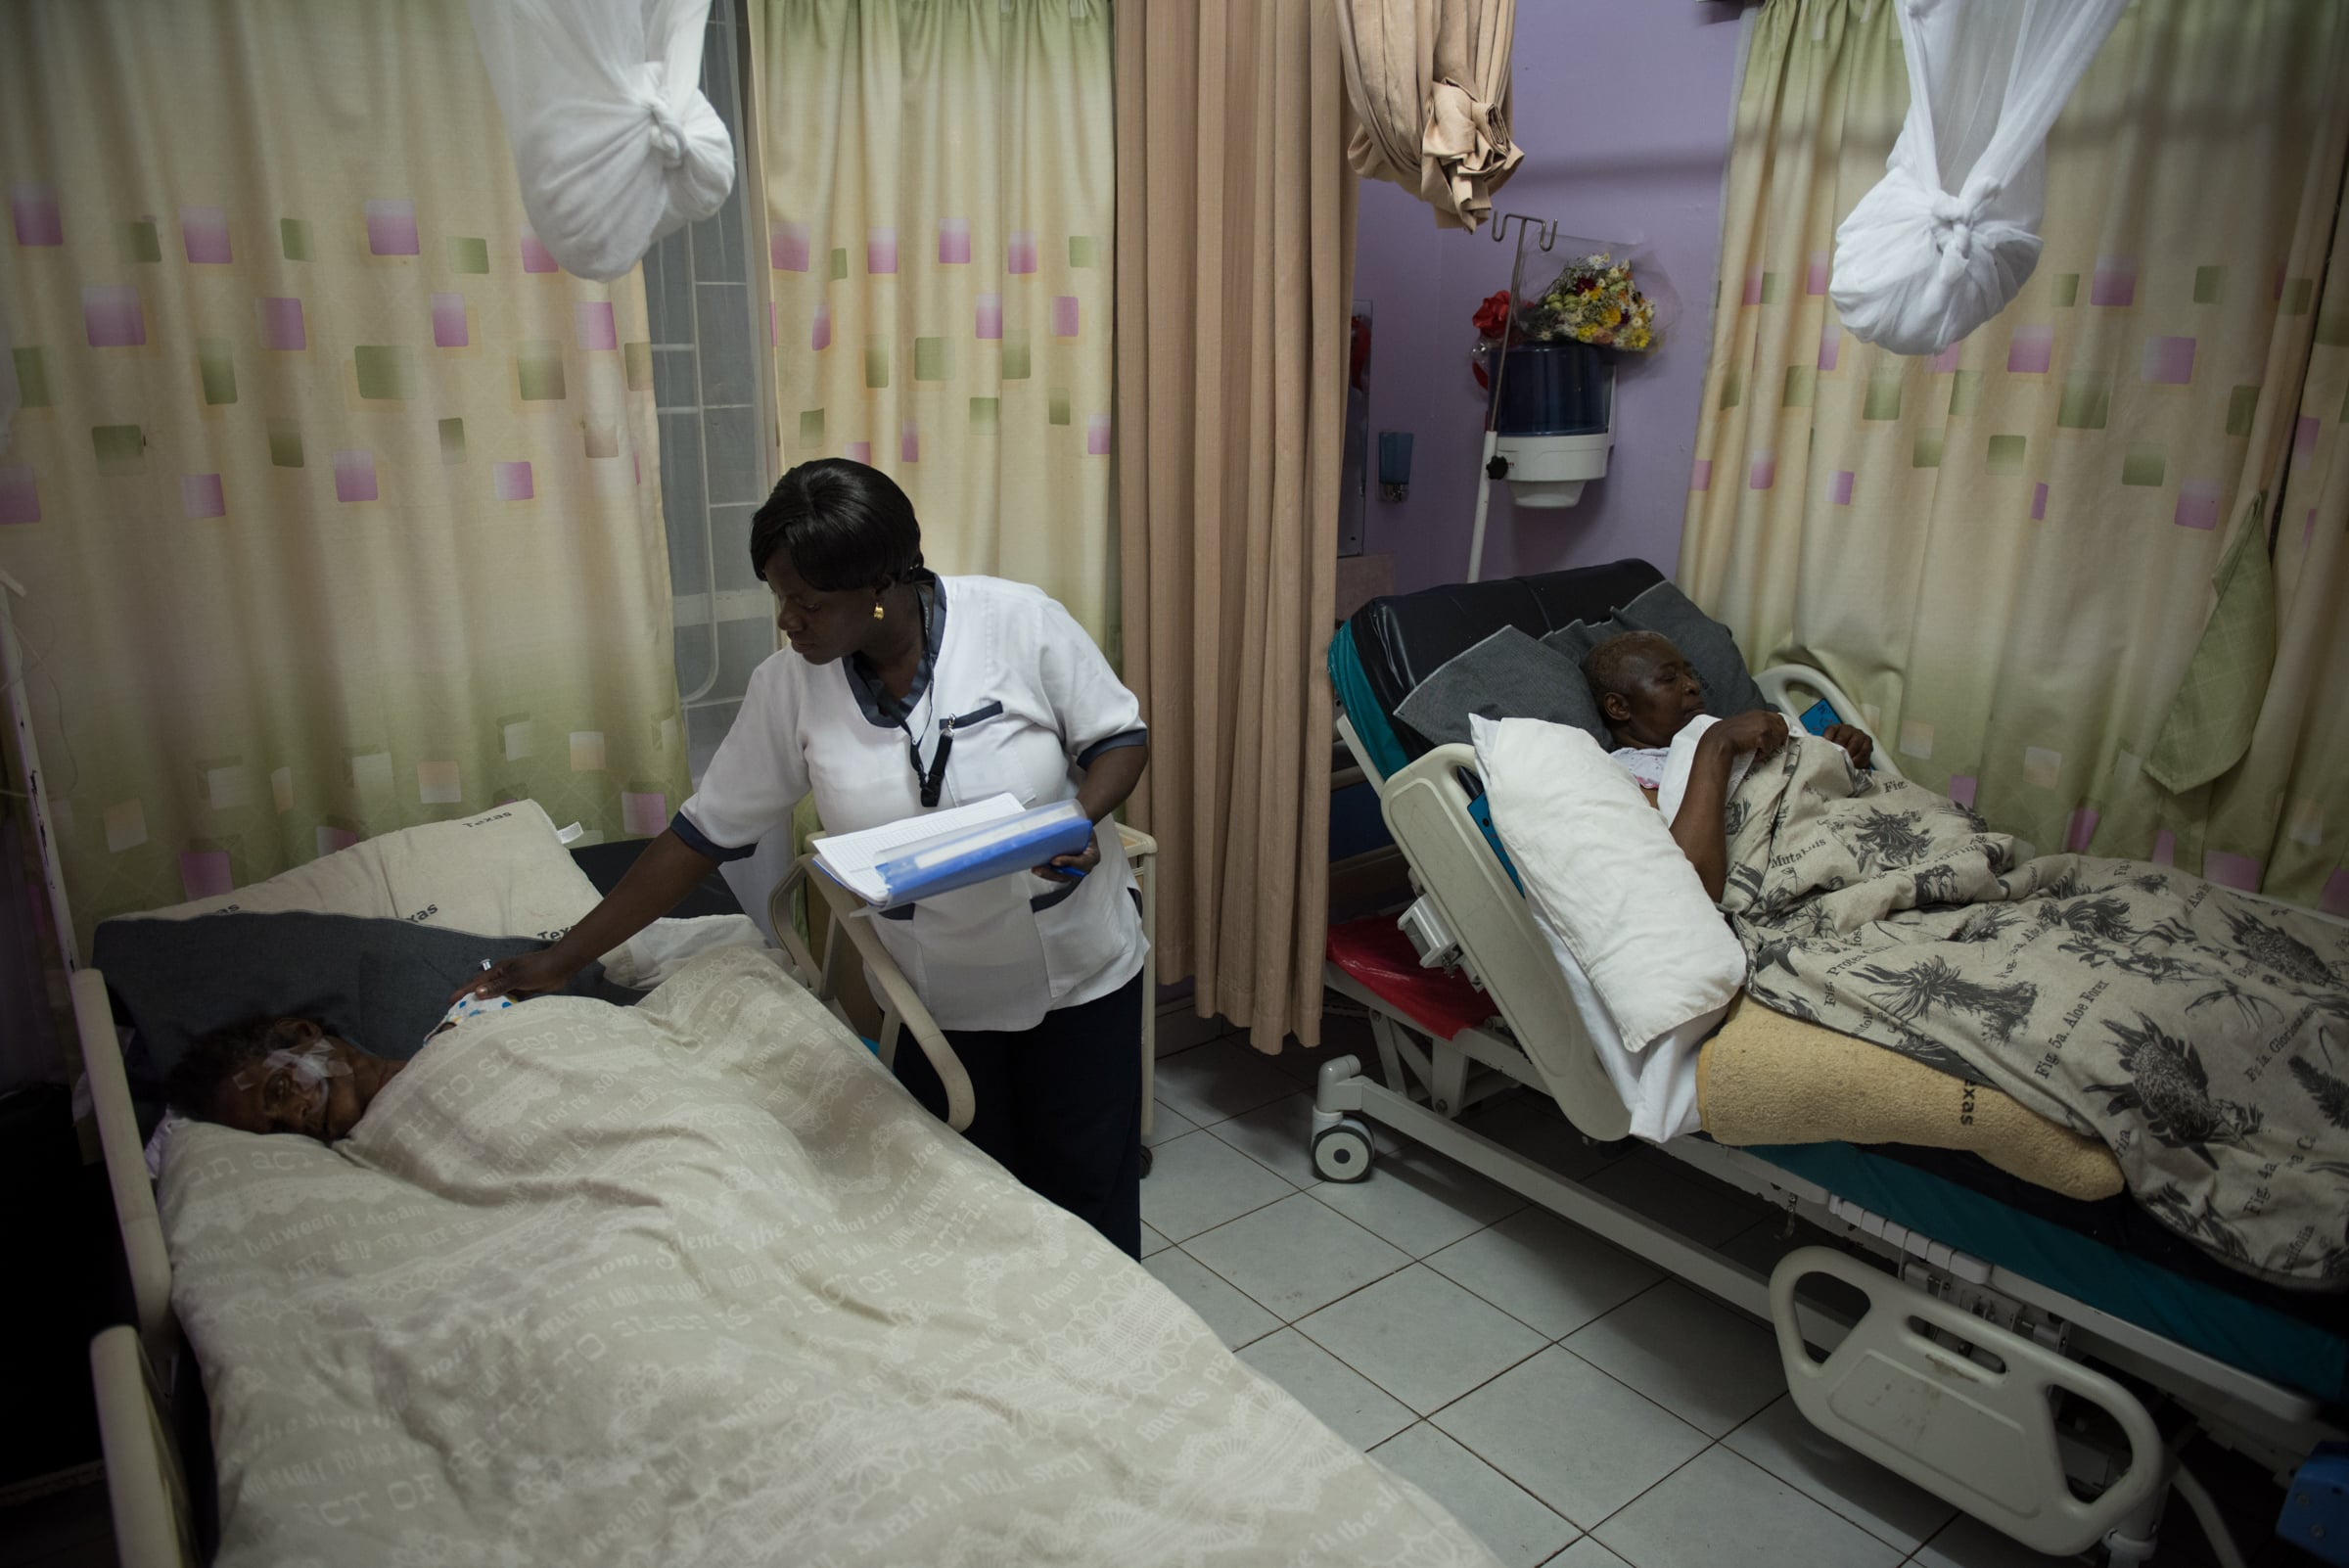 Nurse Carren Asembo checks on two patients at the Texas Cancer Center during the night shift.